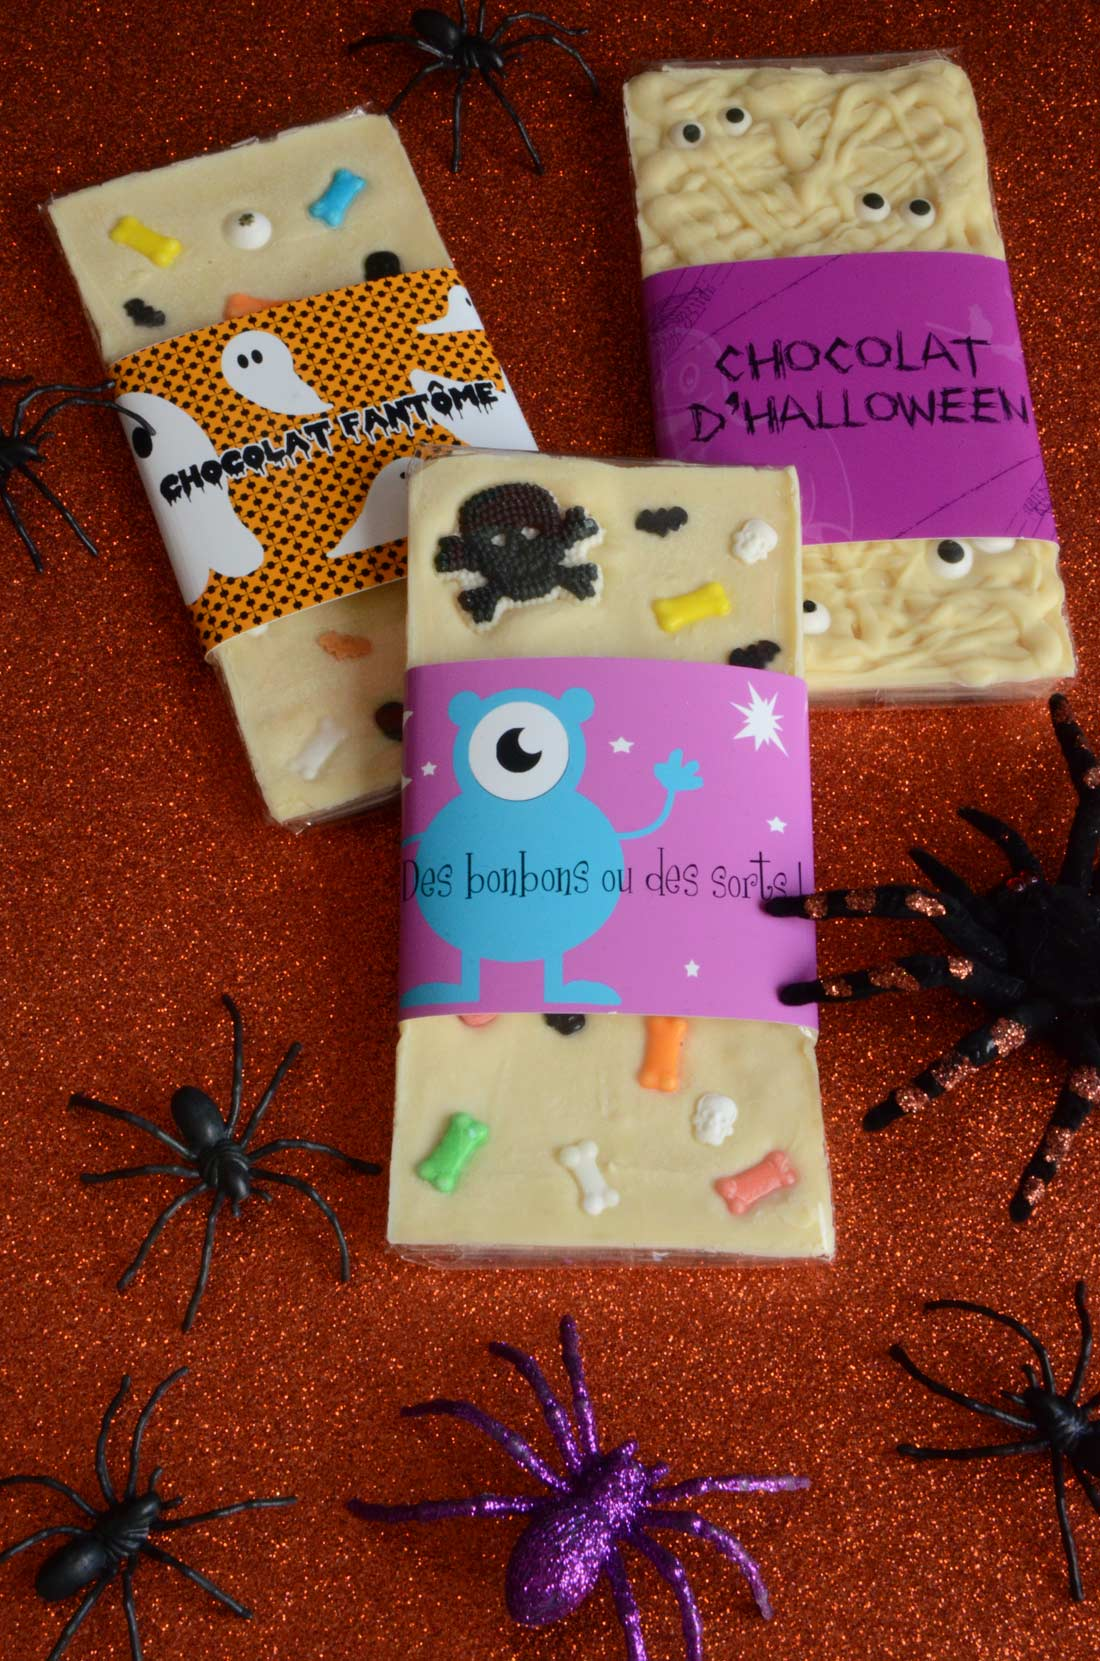 Tablettes de chocolat customisé pour Halloween